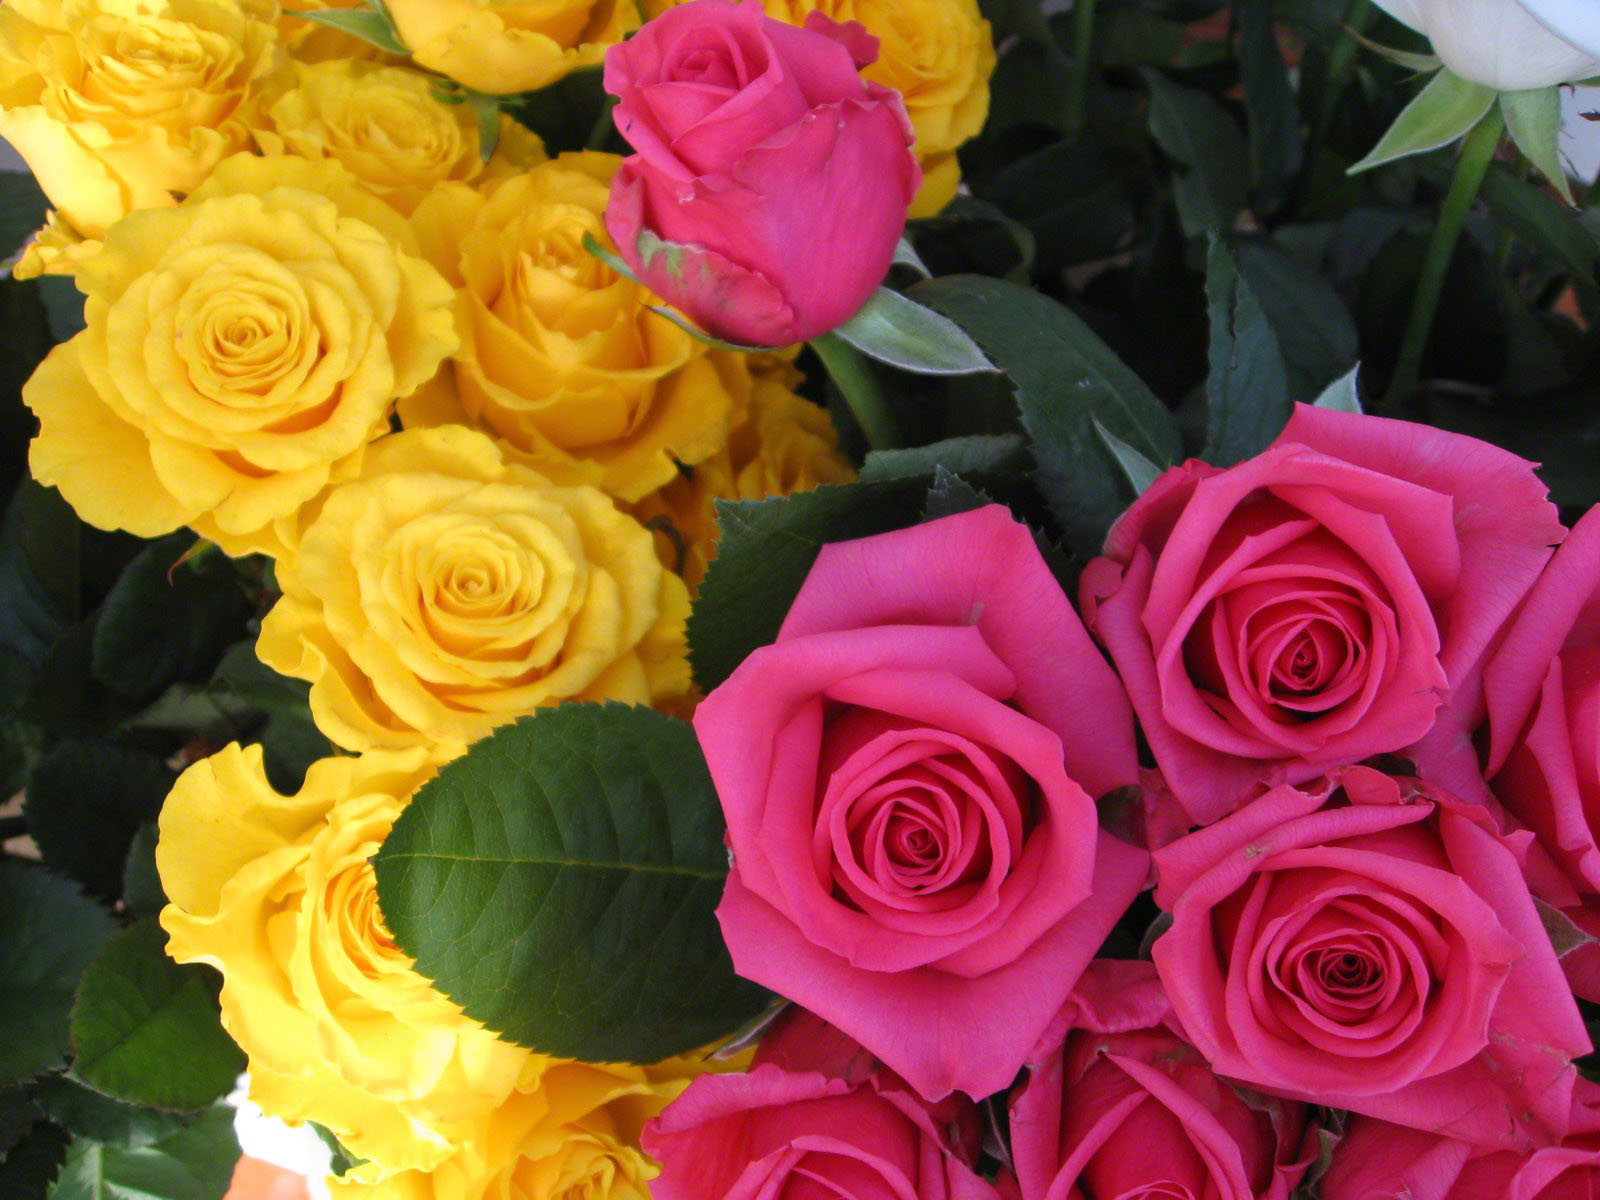 http://www.fabiovisentin.com/photography/photo/12/roses-wallpaper-roses-bouquets4350.JPG